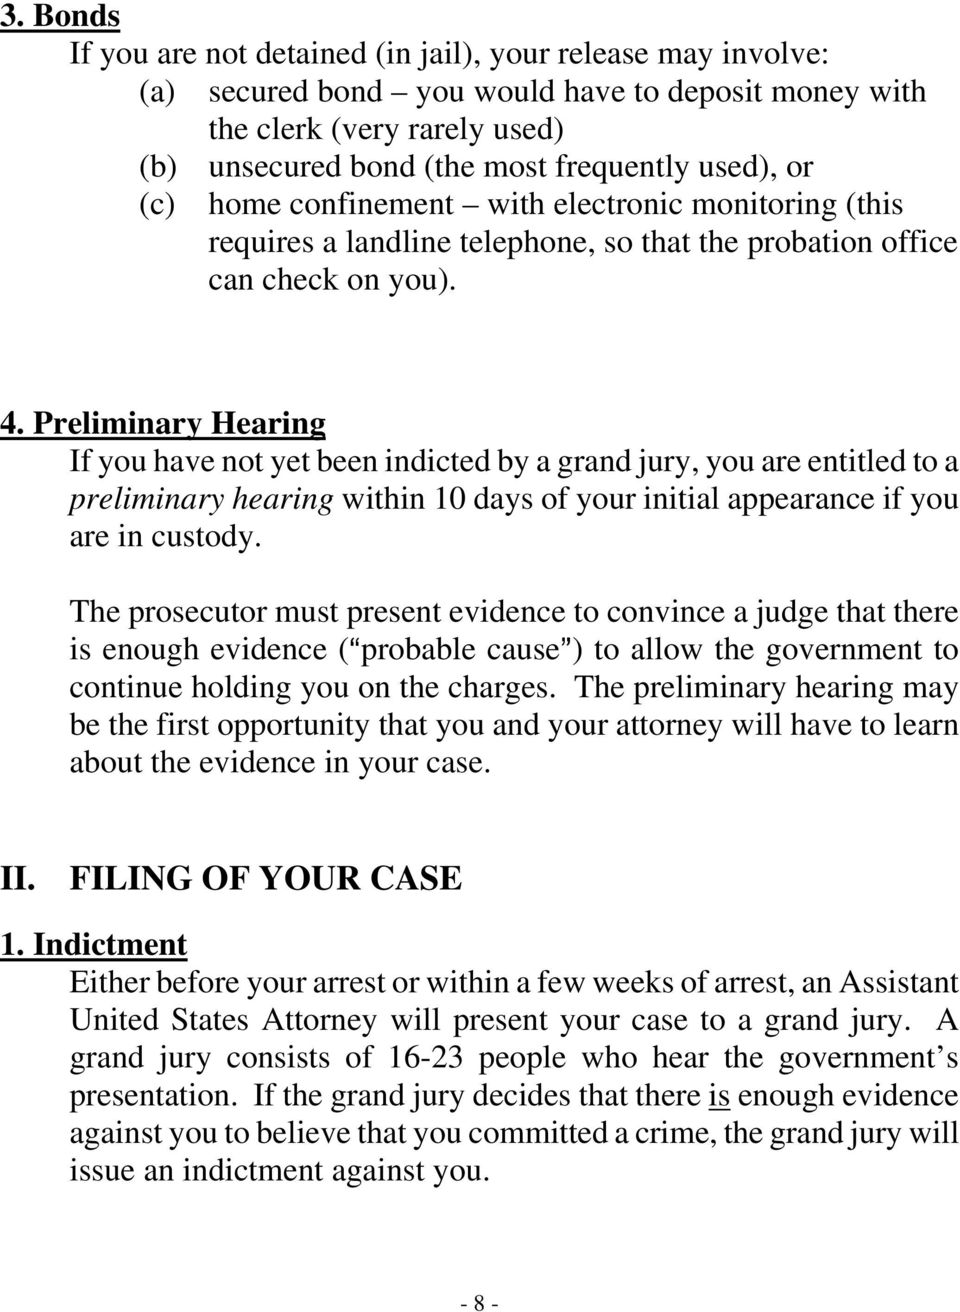 Preliminary Hearing If you have not yet been indicted by a grand jury, you are entitled to a preliminary hearing within 10 days of your initial appearance if you are in custody.